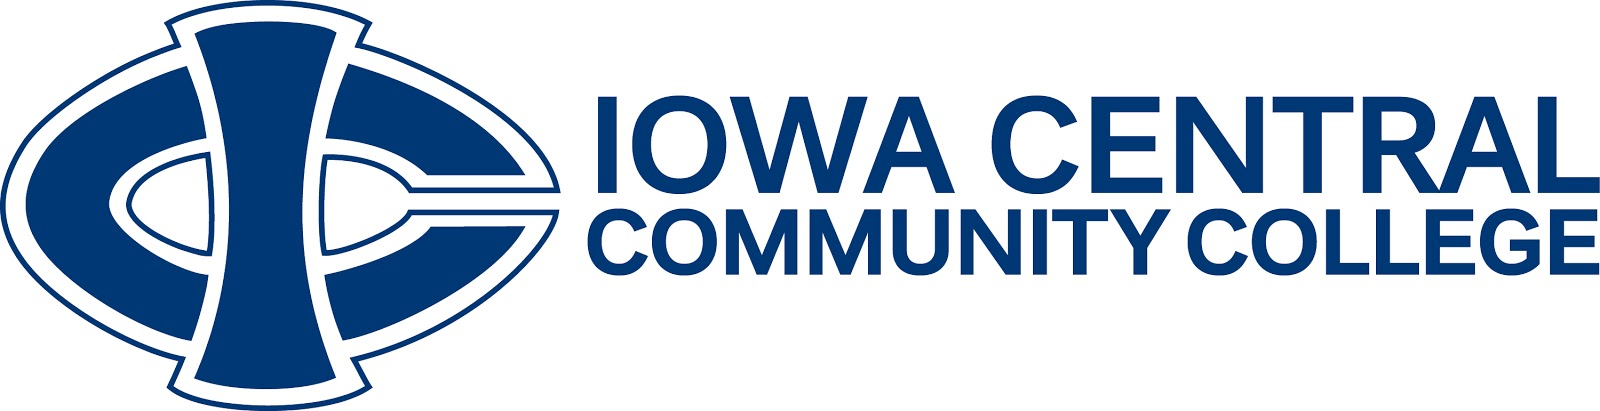 Iowa Central Community College.jpg